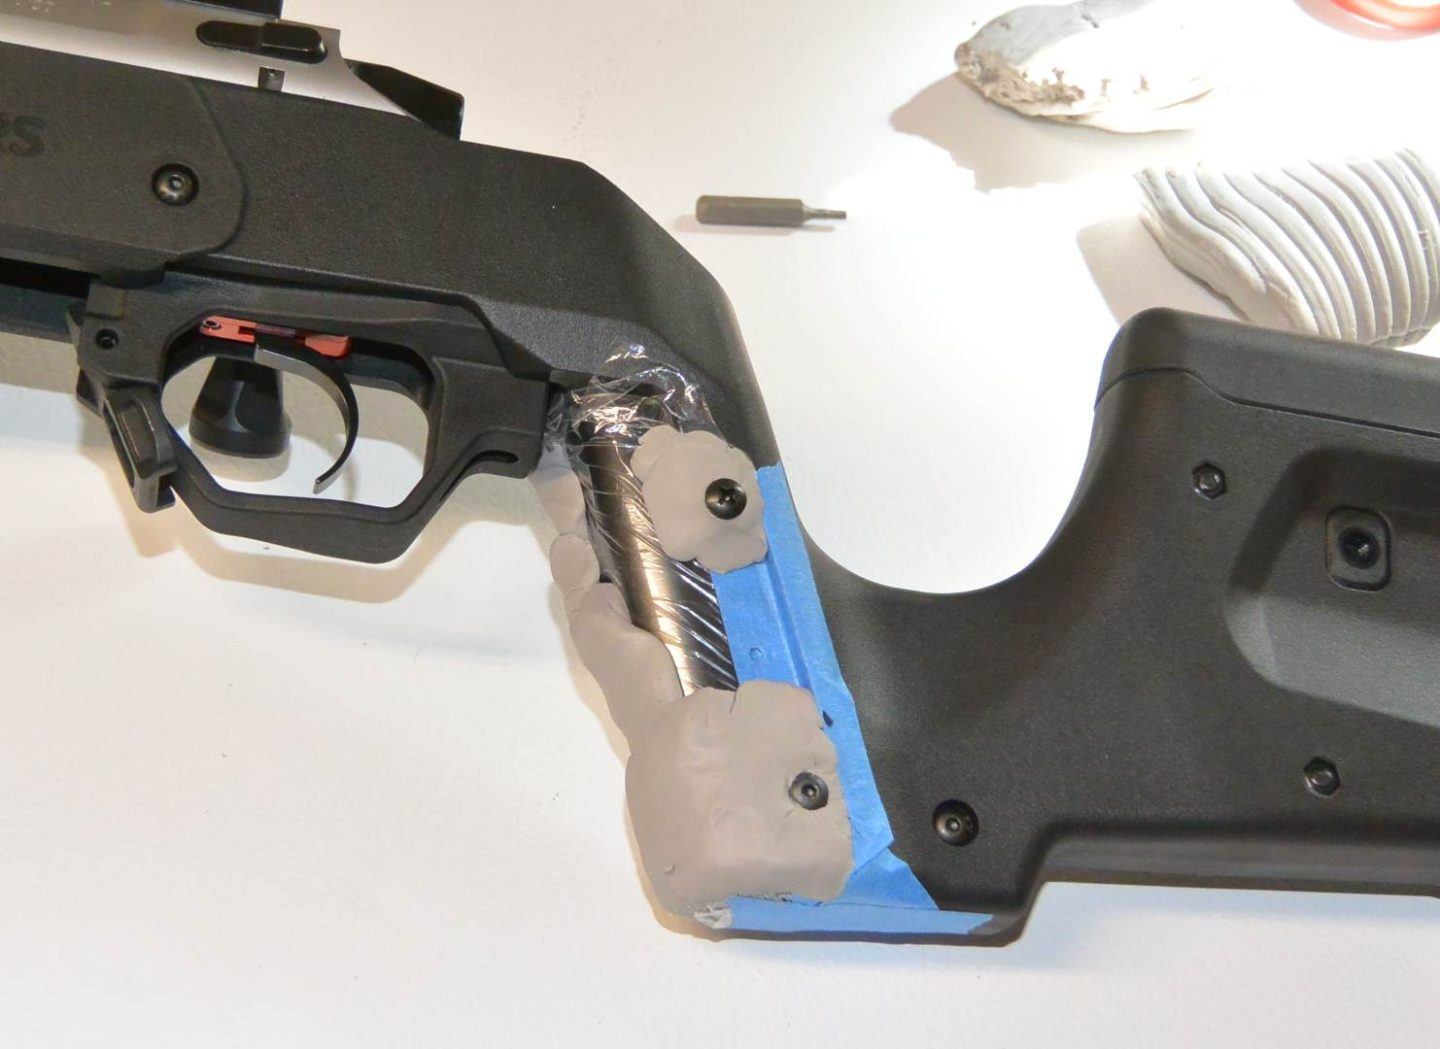 Building my polymer clay grip on the MDT XRS stock